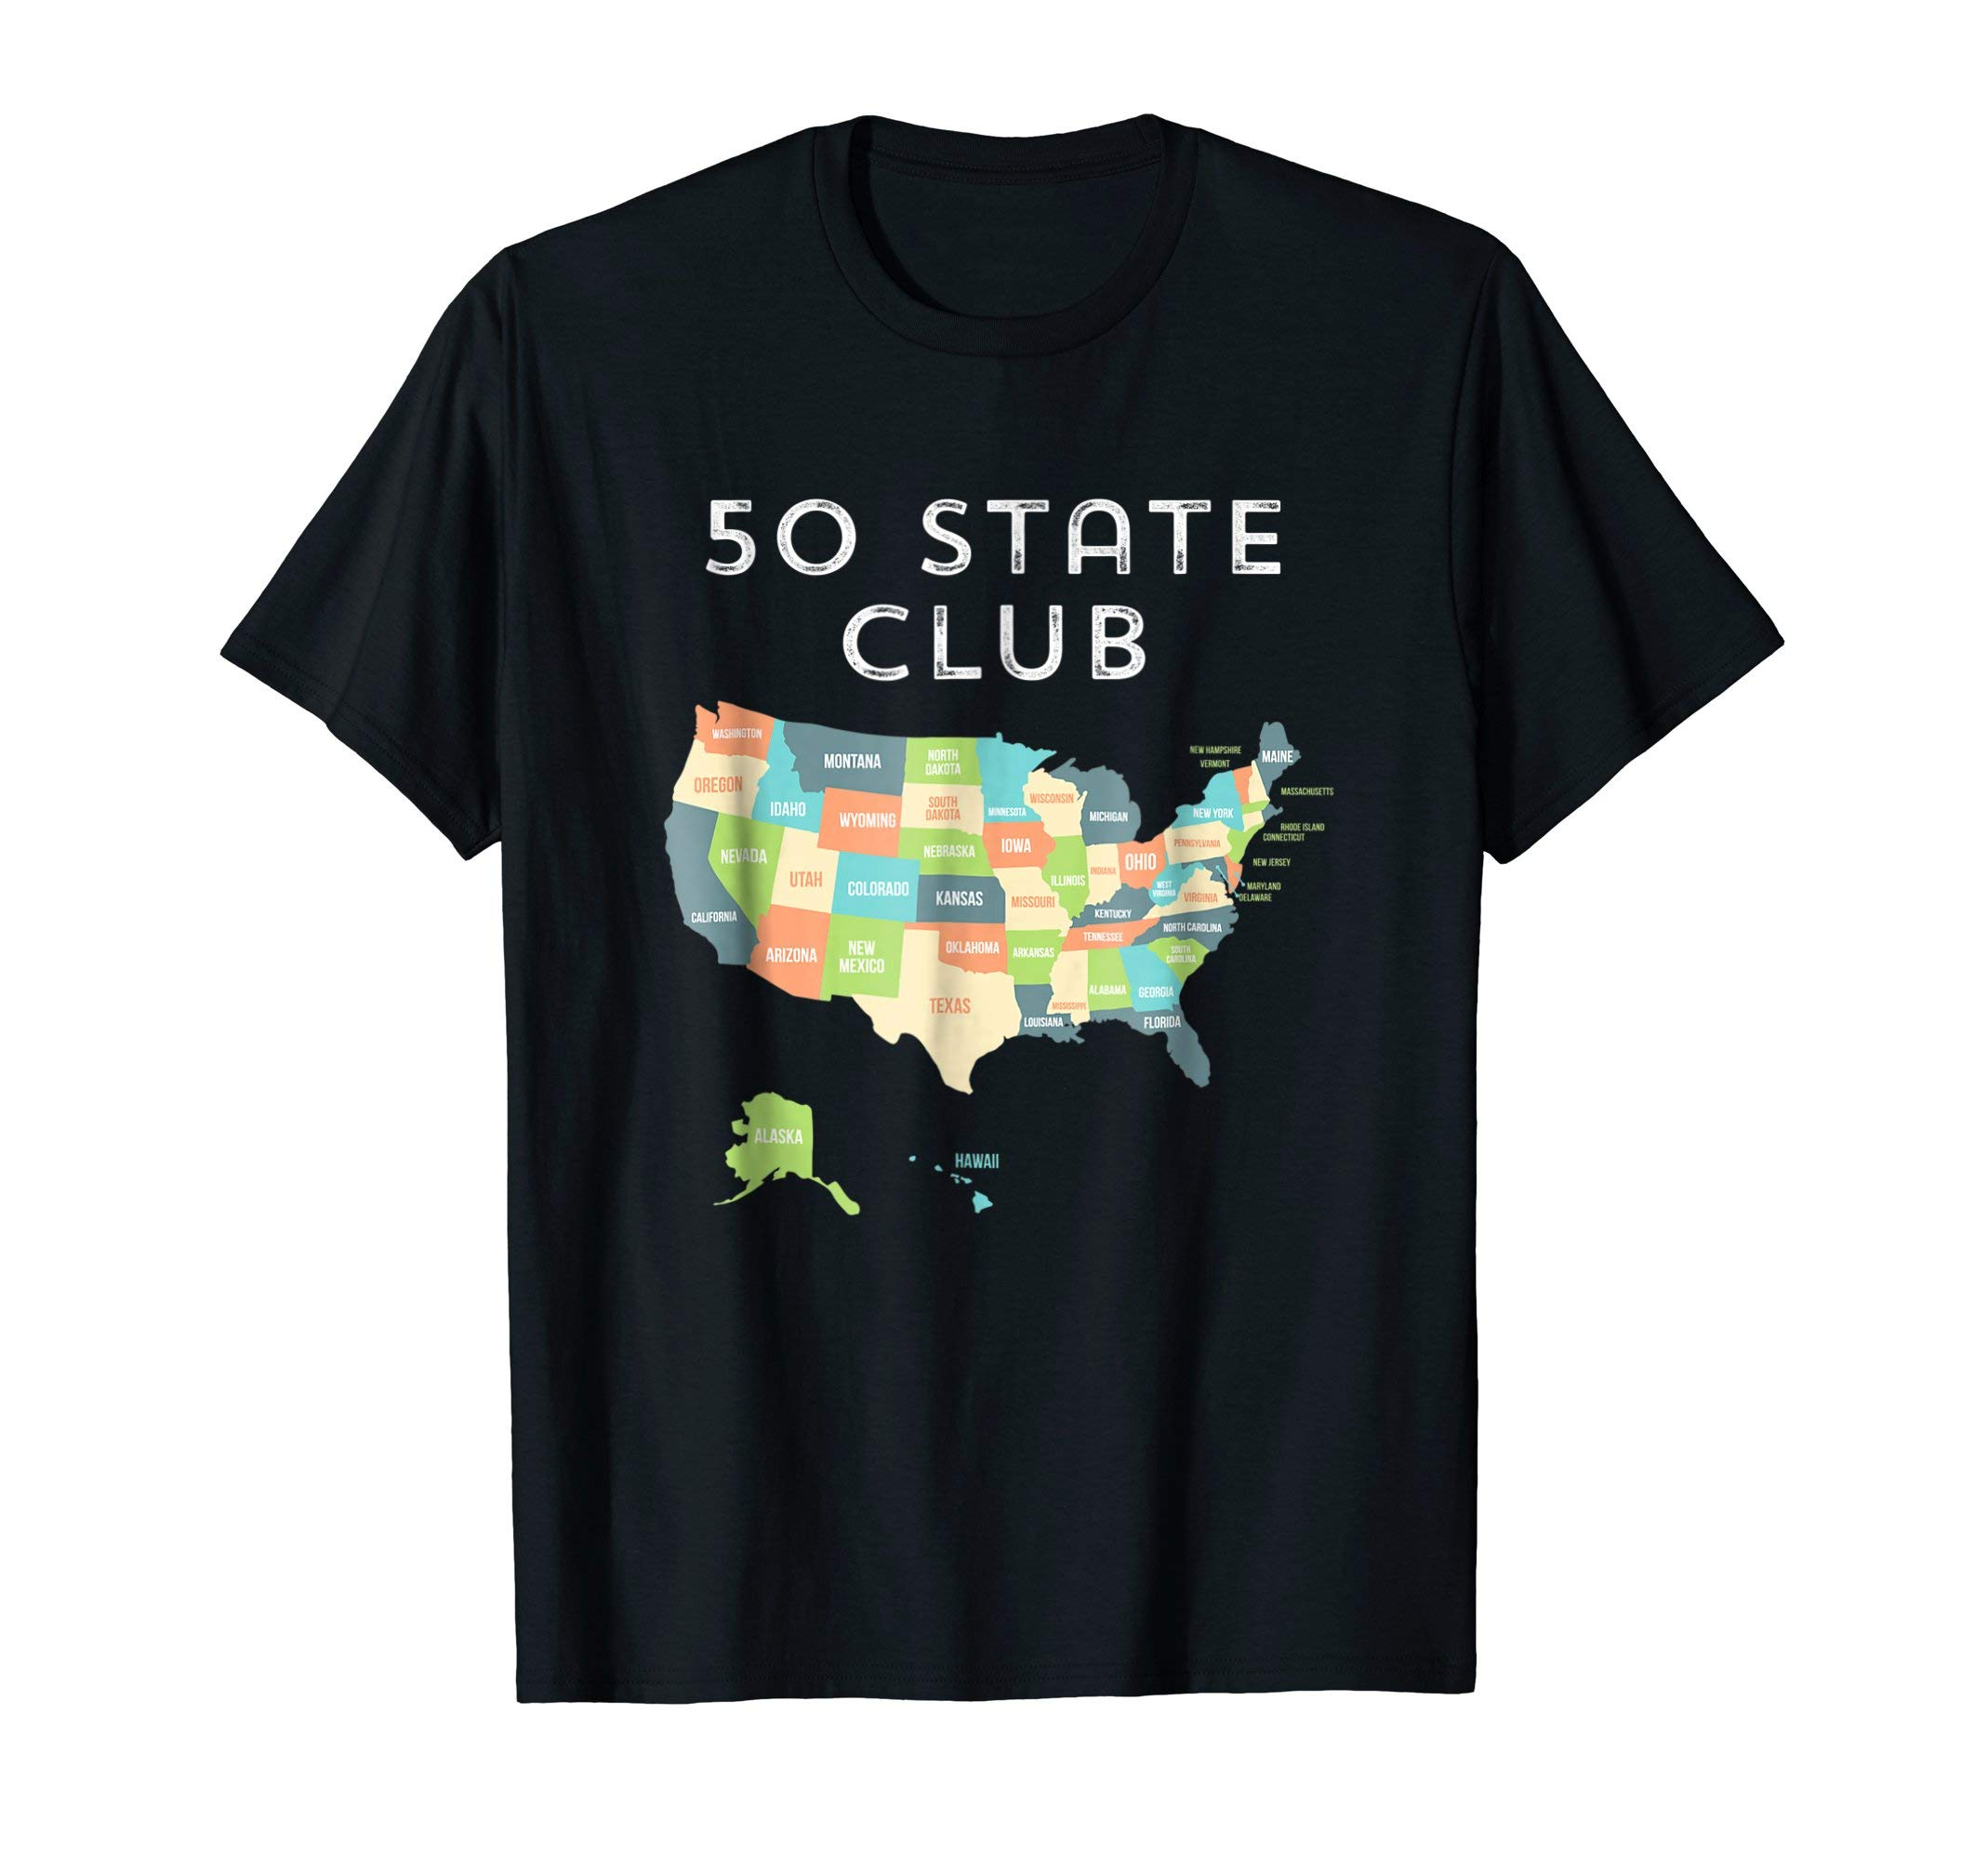 Visit all 50 states shirt, USA map t-shirt gift for travel